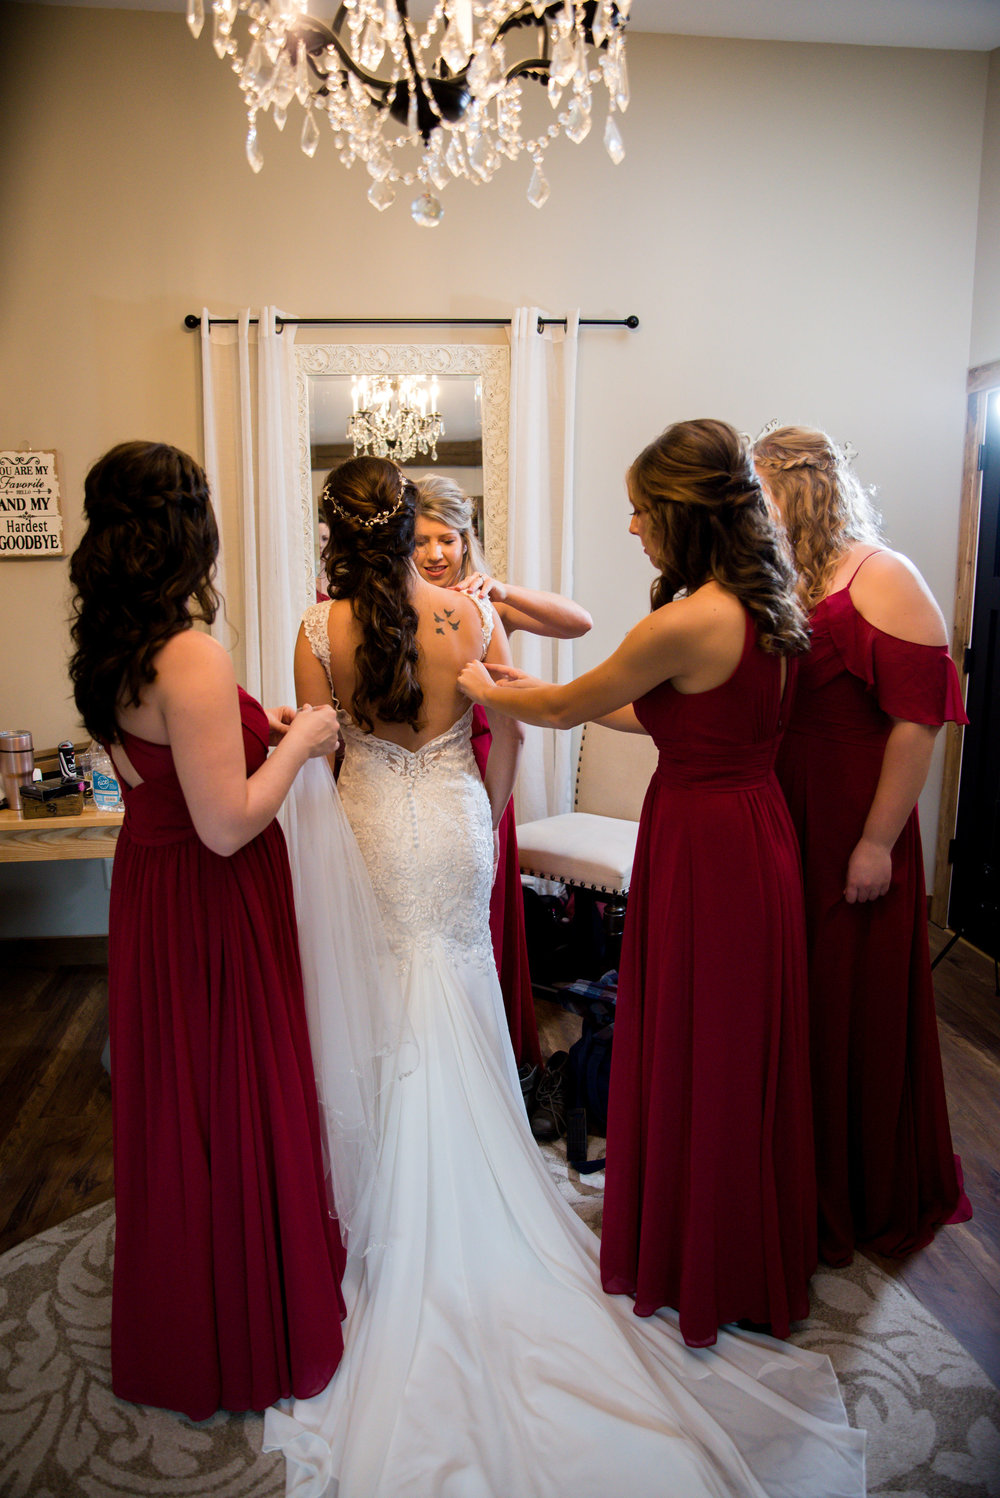 Katie and her bridesmaids all looked so beautiful! Hello stunning wedding dress embellishments!